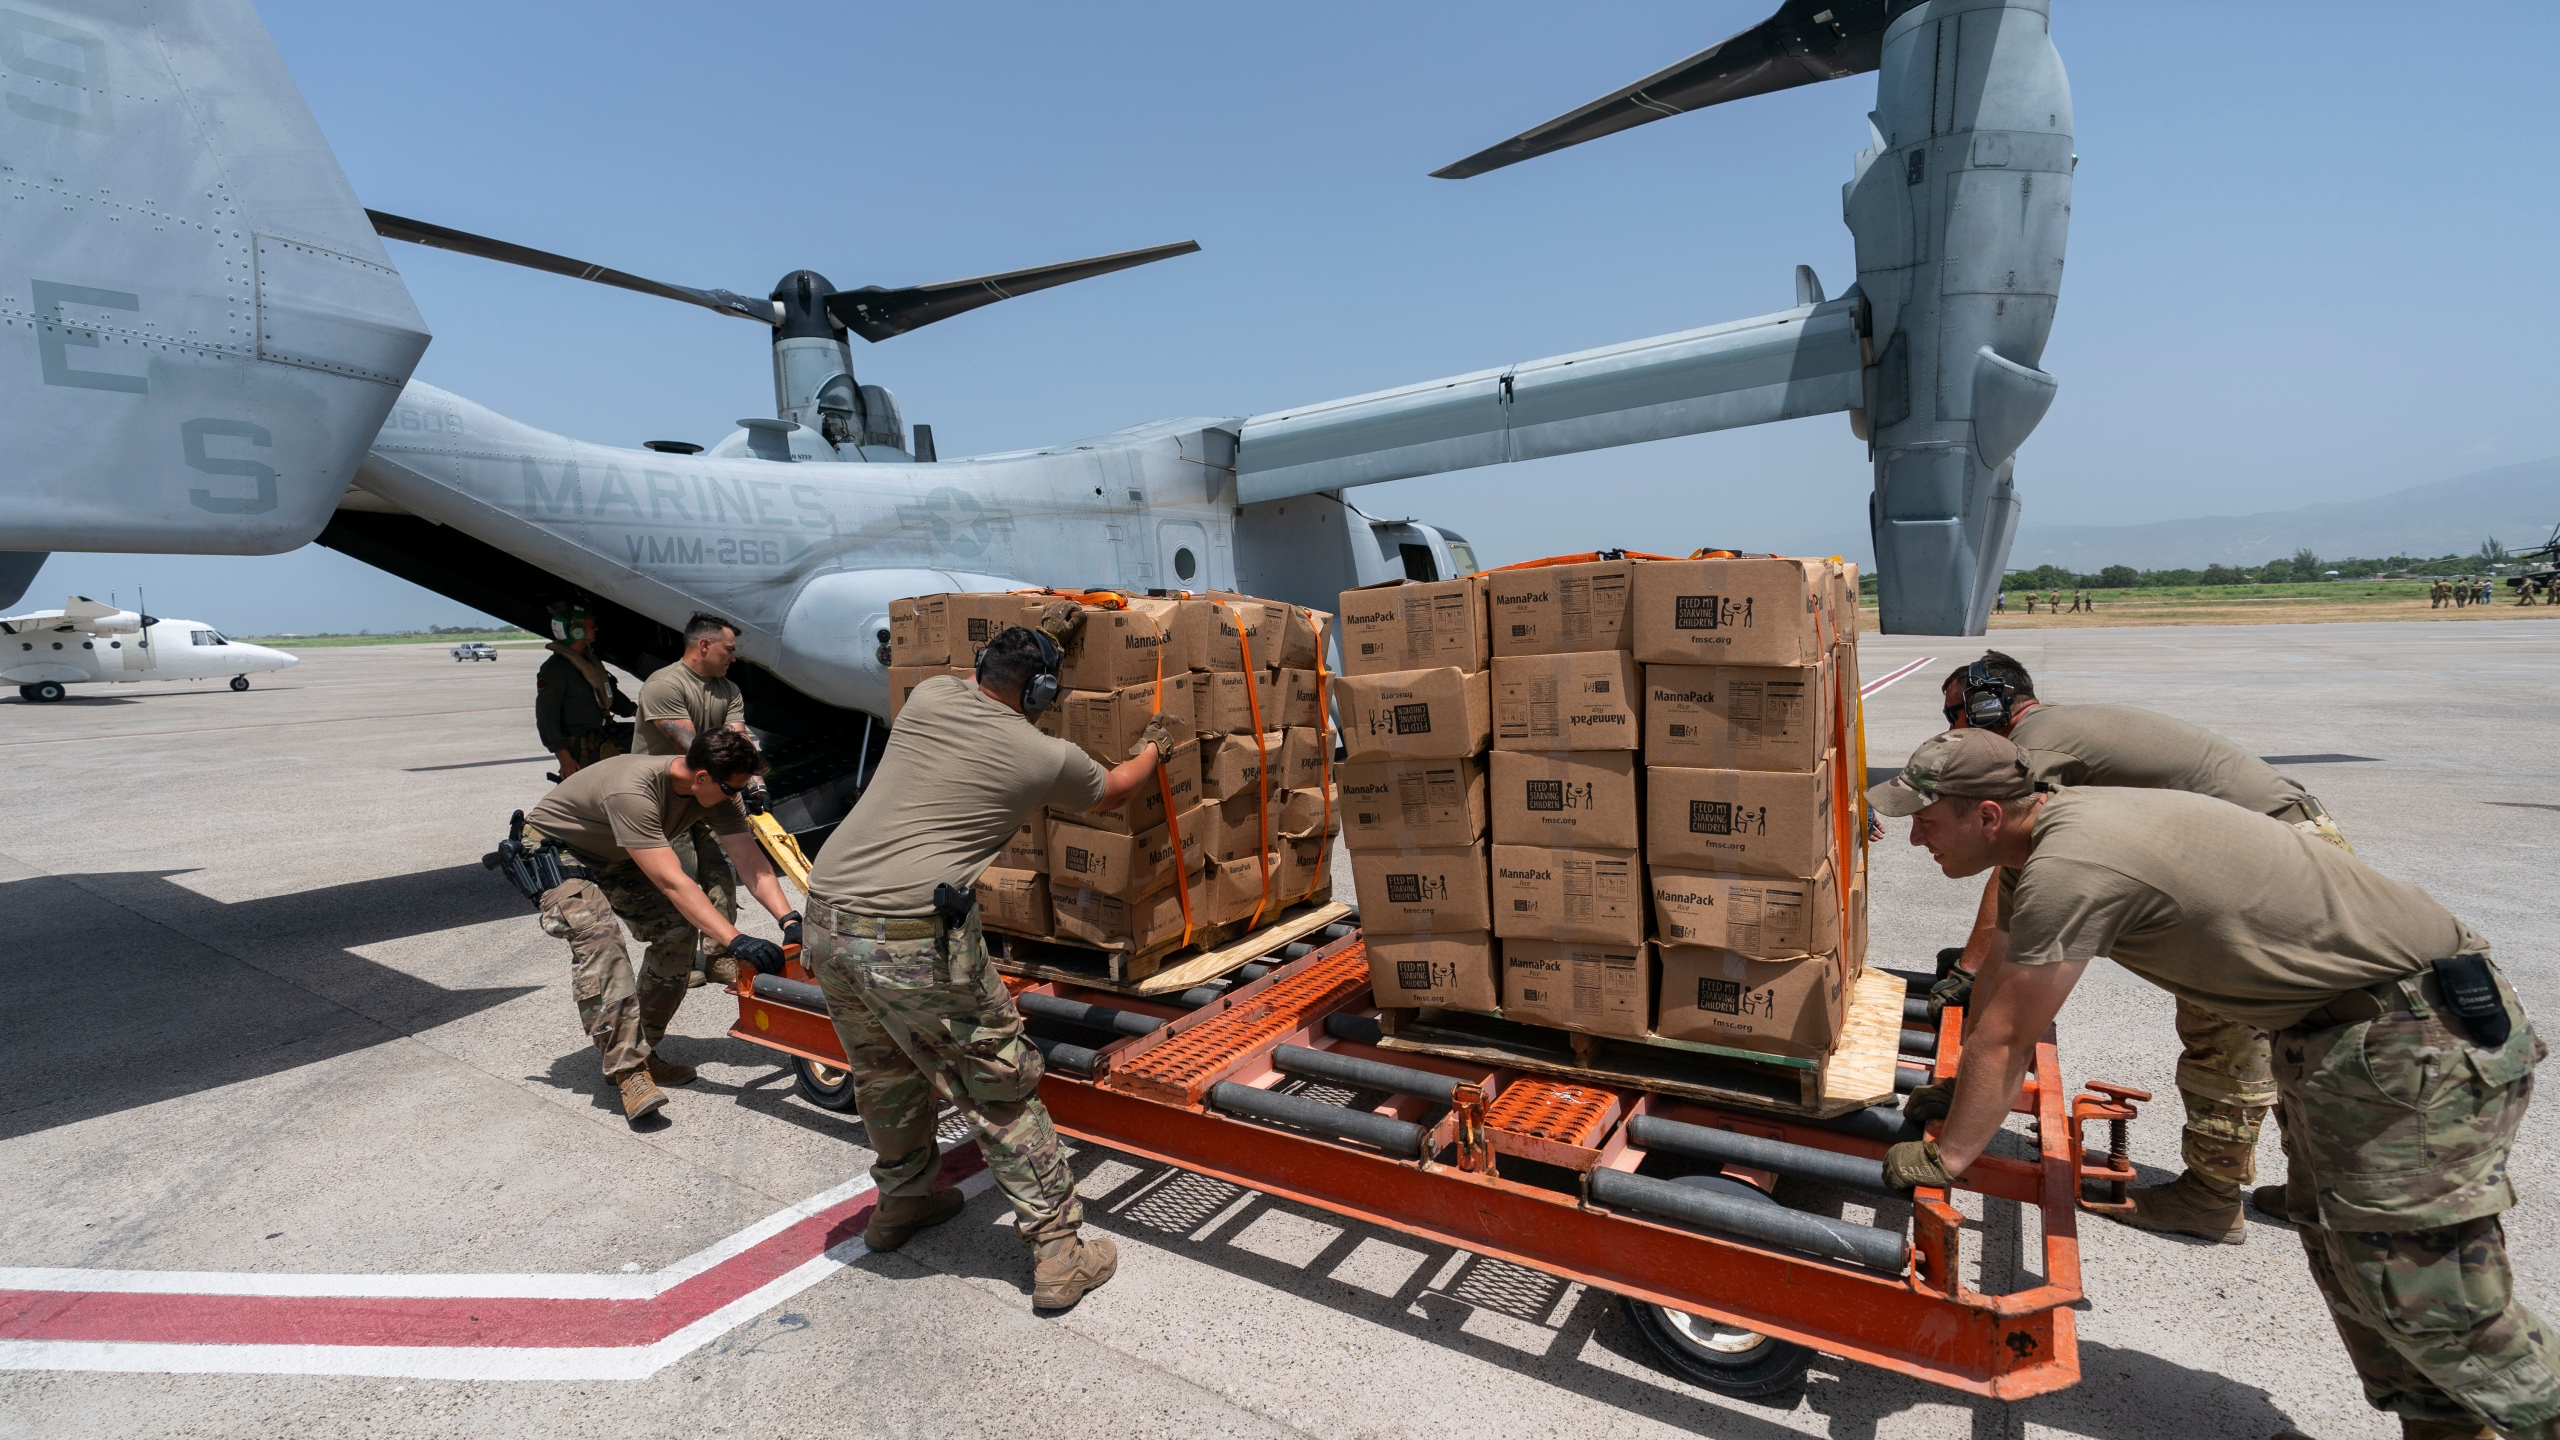 """Food is loaded onto a VM-22 Osprey at Toussaint Louverture International Airport, Saturday, Aug. 28, 2021, in Port-au-Prince, Haiti. The VMM-266, """"Fighting Griffins,"""" from Marine Corps Air Station New River, from Jacksonville, N.C., are flying in support of Joint Task Force Haiti after a 7.2 magnitude earthquake on Aug. 22, caused heavy damage to the country. (AP Photo/Alex Brandon)"""